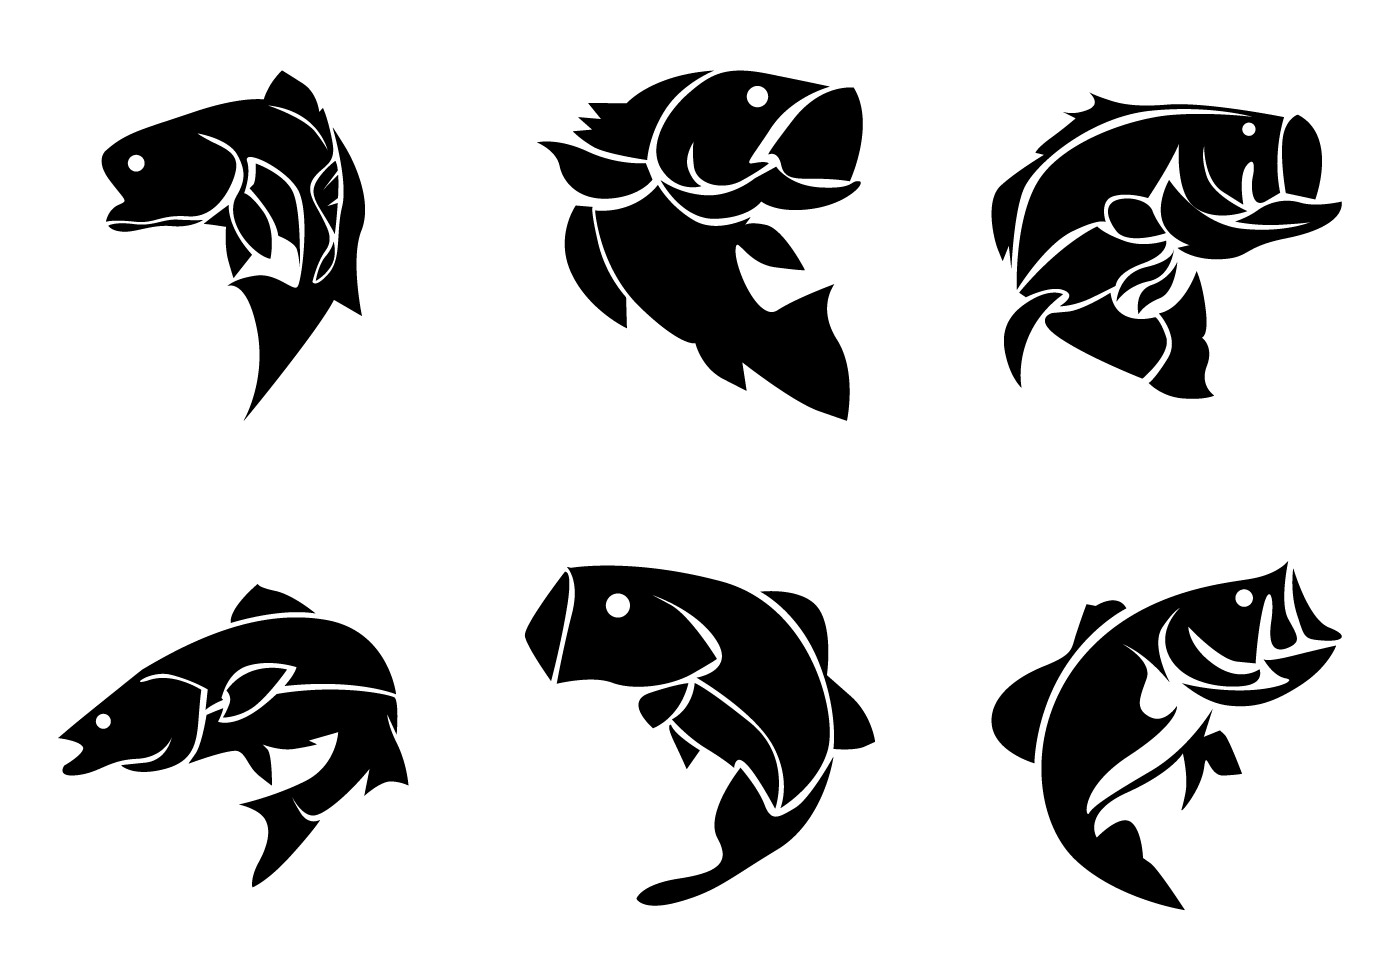 Bass Fish Silhoutte Vector - Download Free Vector Art ...